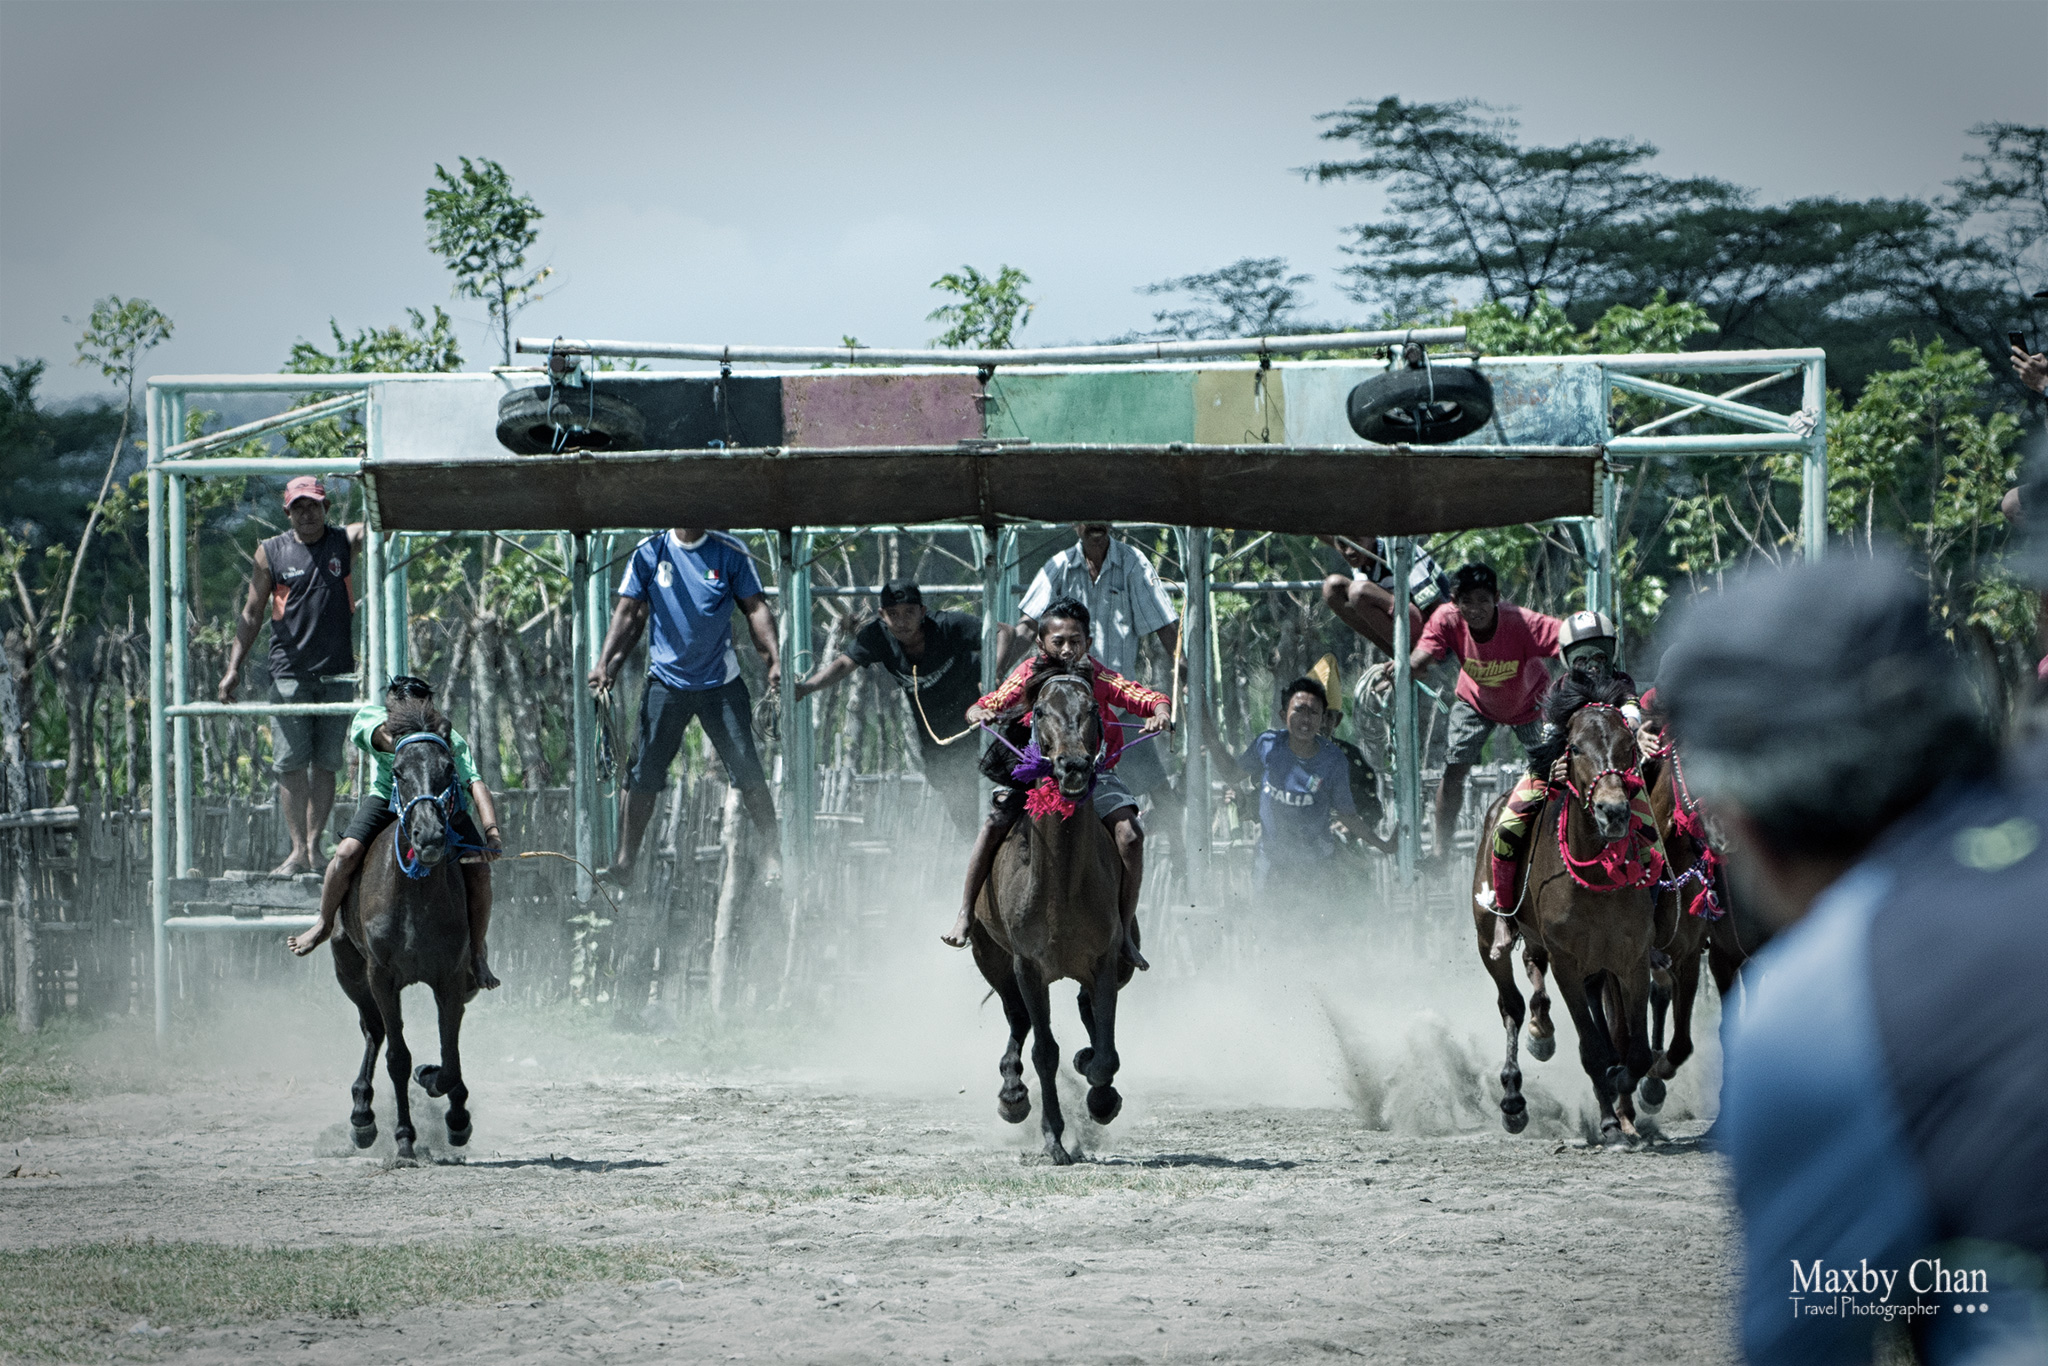 The start of the horse race at the gates.